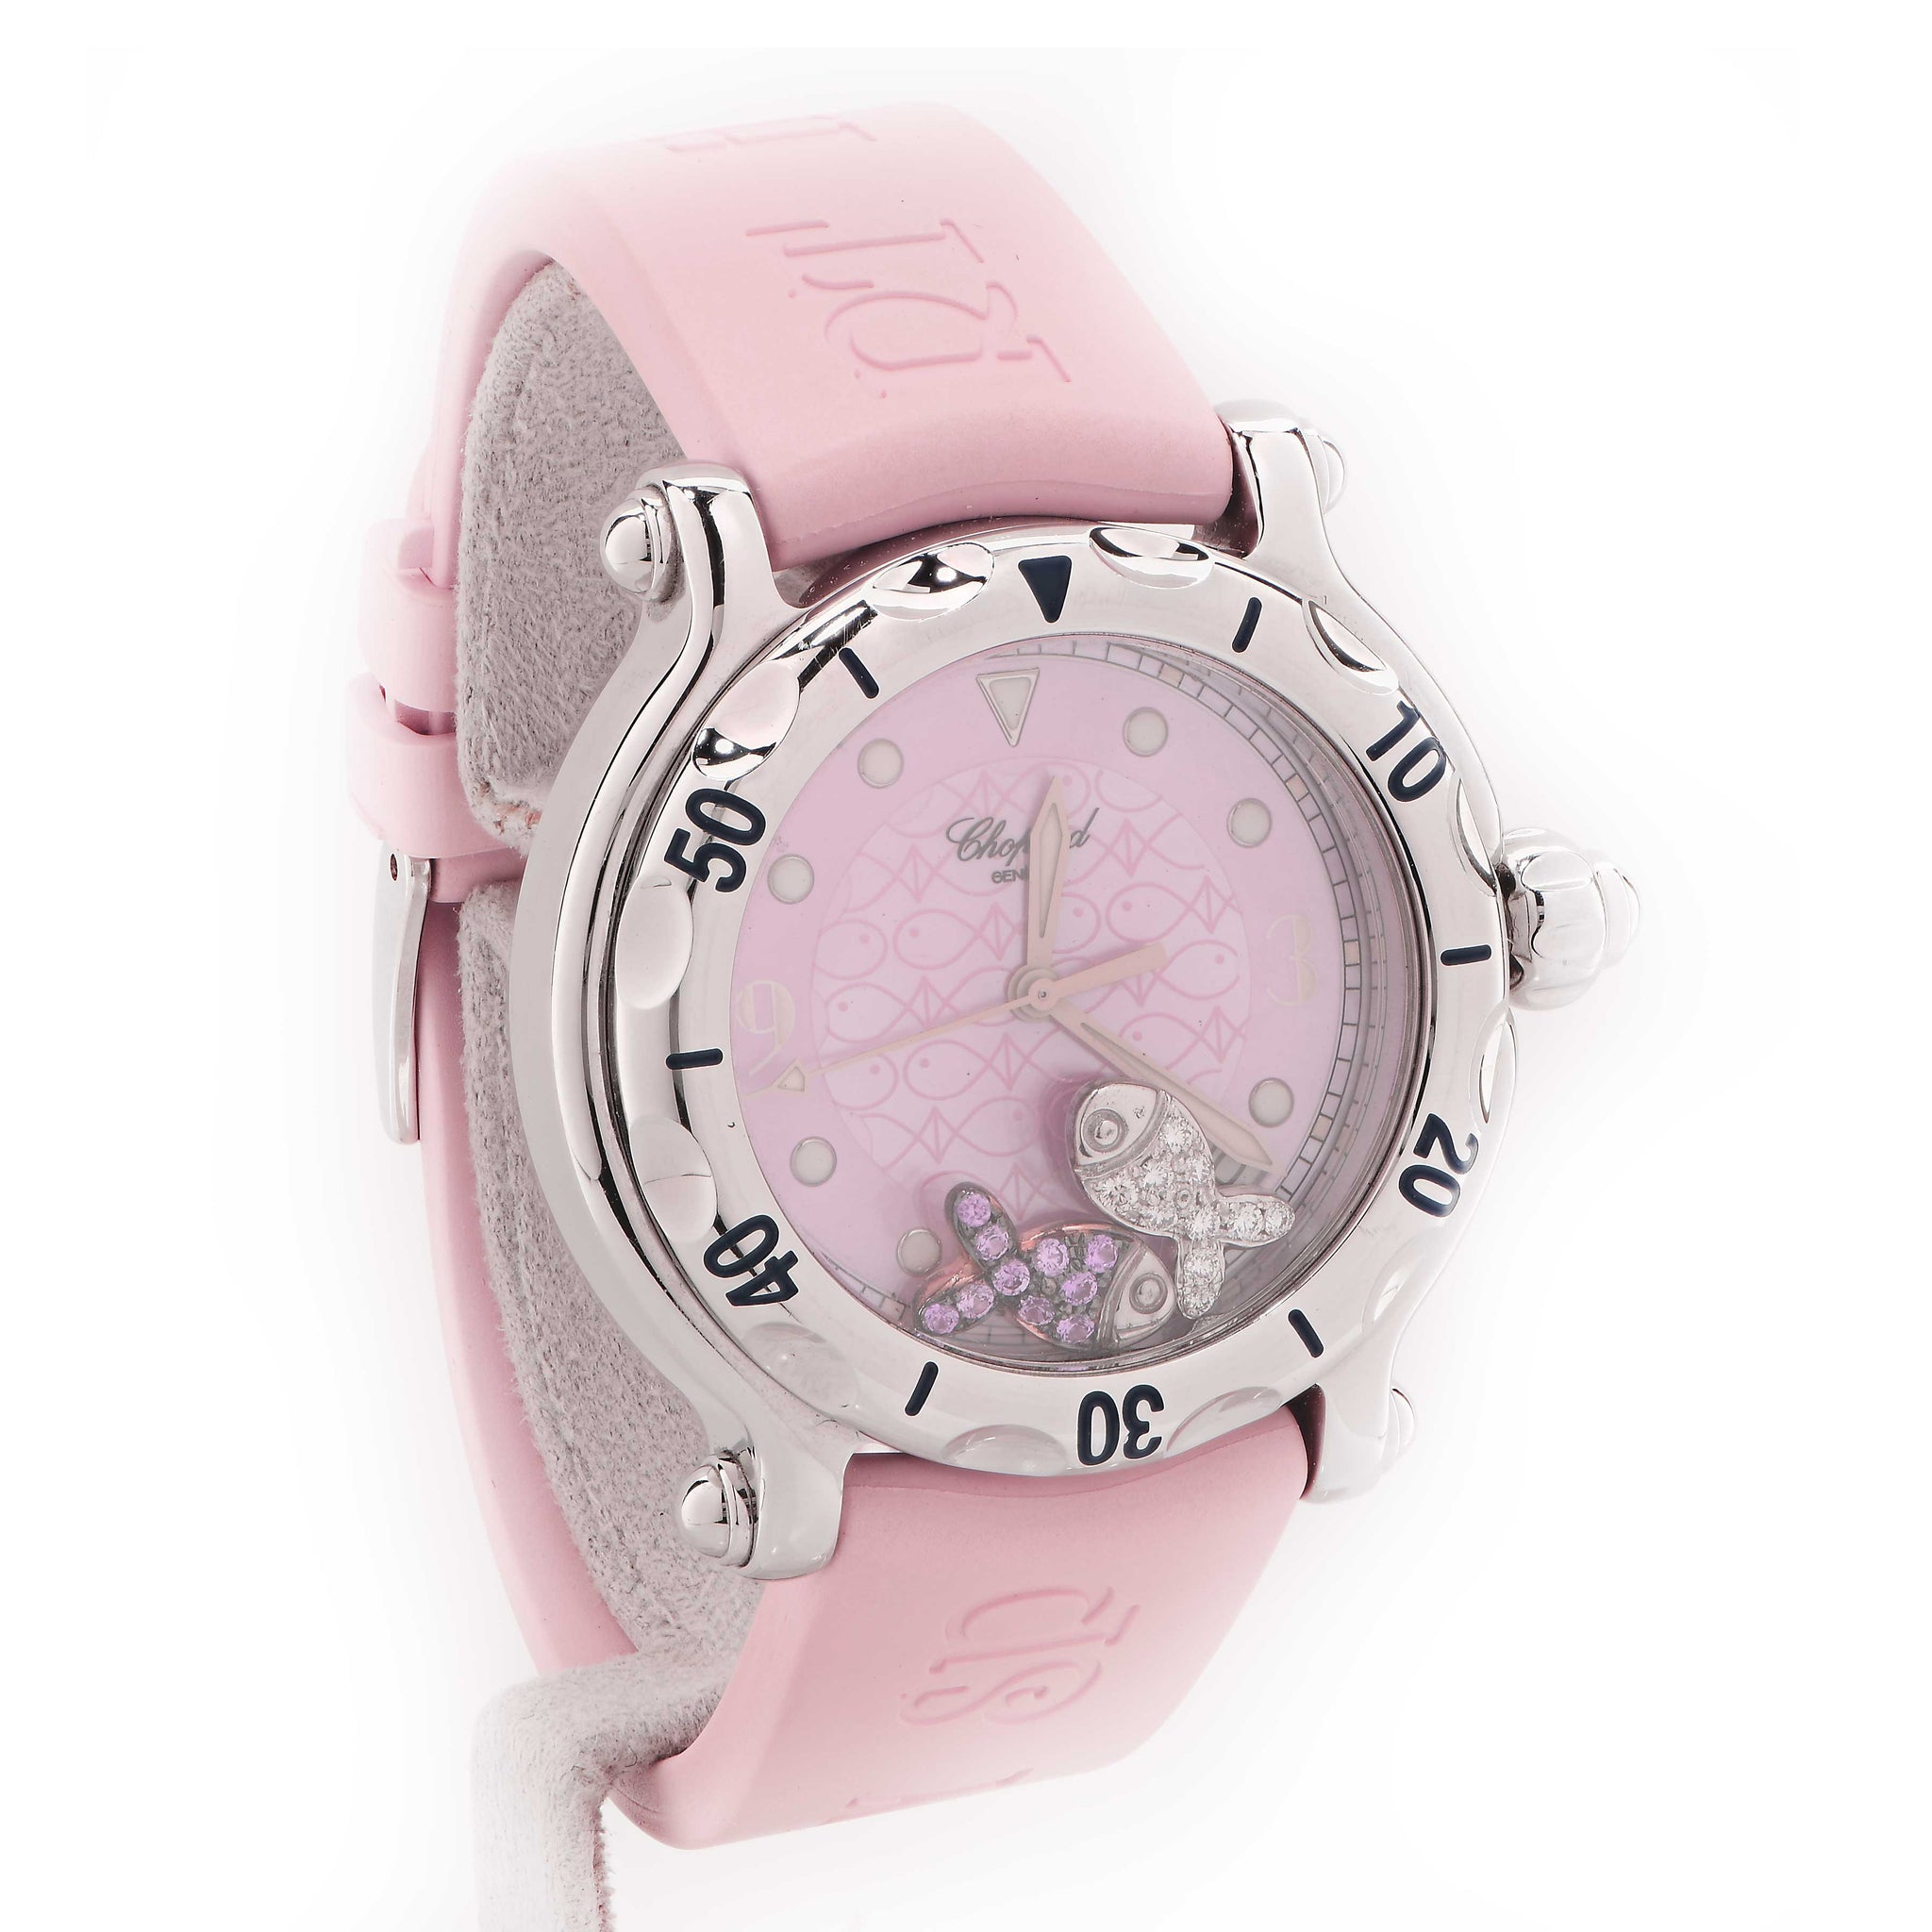 jewelers wristwatch stainless main ladies miracle on collections watches steel beach regent pink chop mile types chopard happy